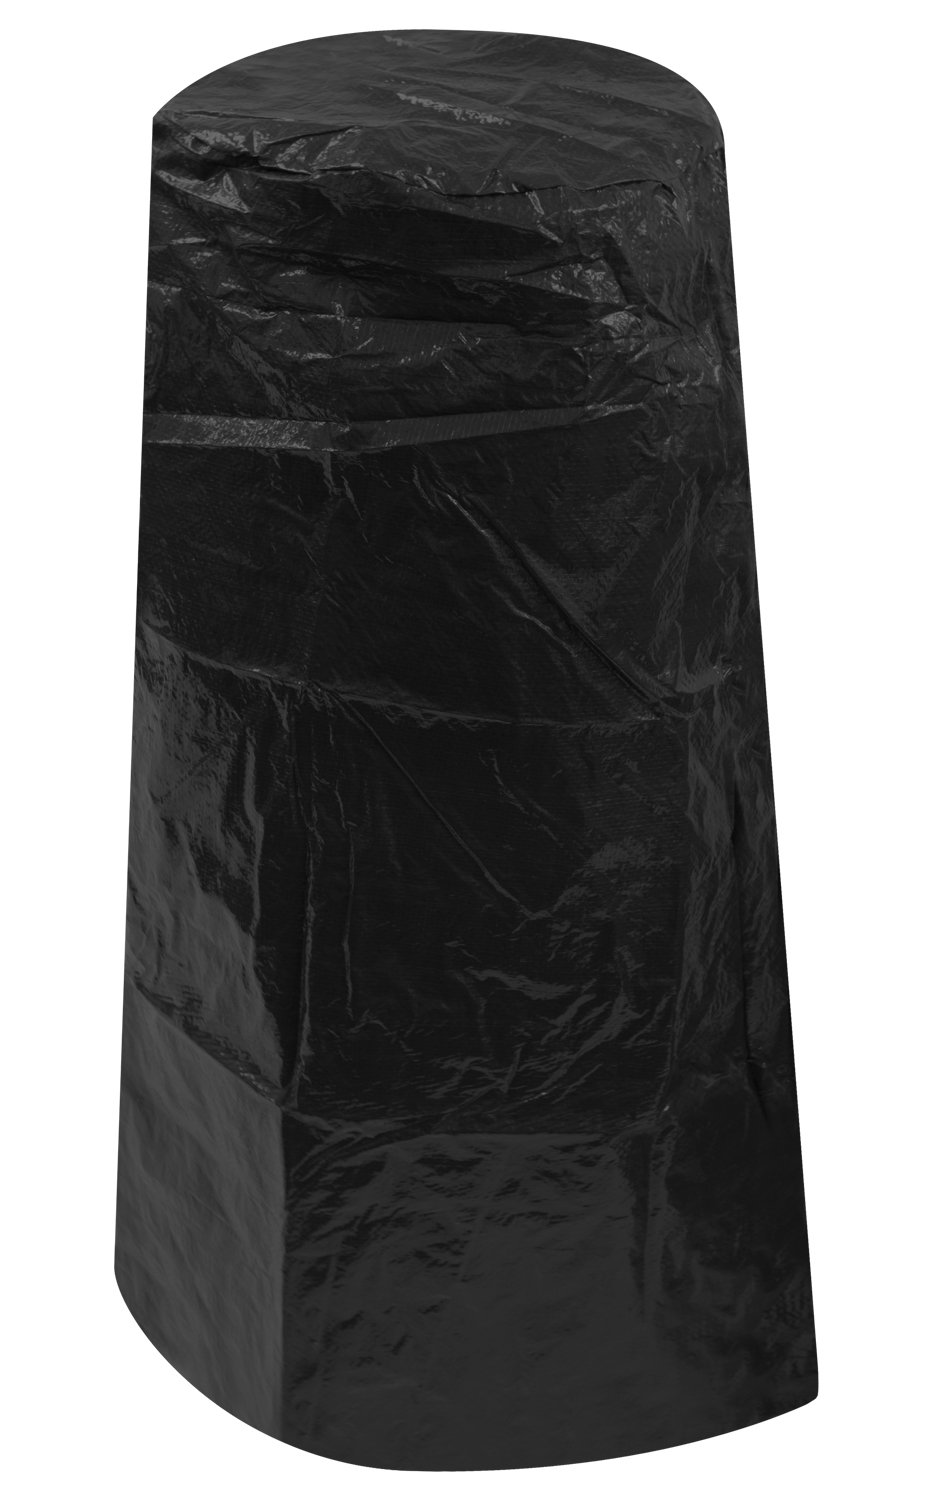 Black Outdoor Garden Chiminea Cover 1.02m x 0.39-0.62m/3.3ft x 1.25-2ft Woodside